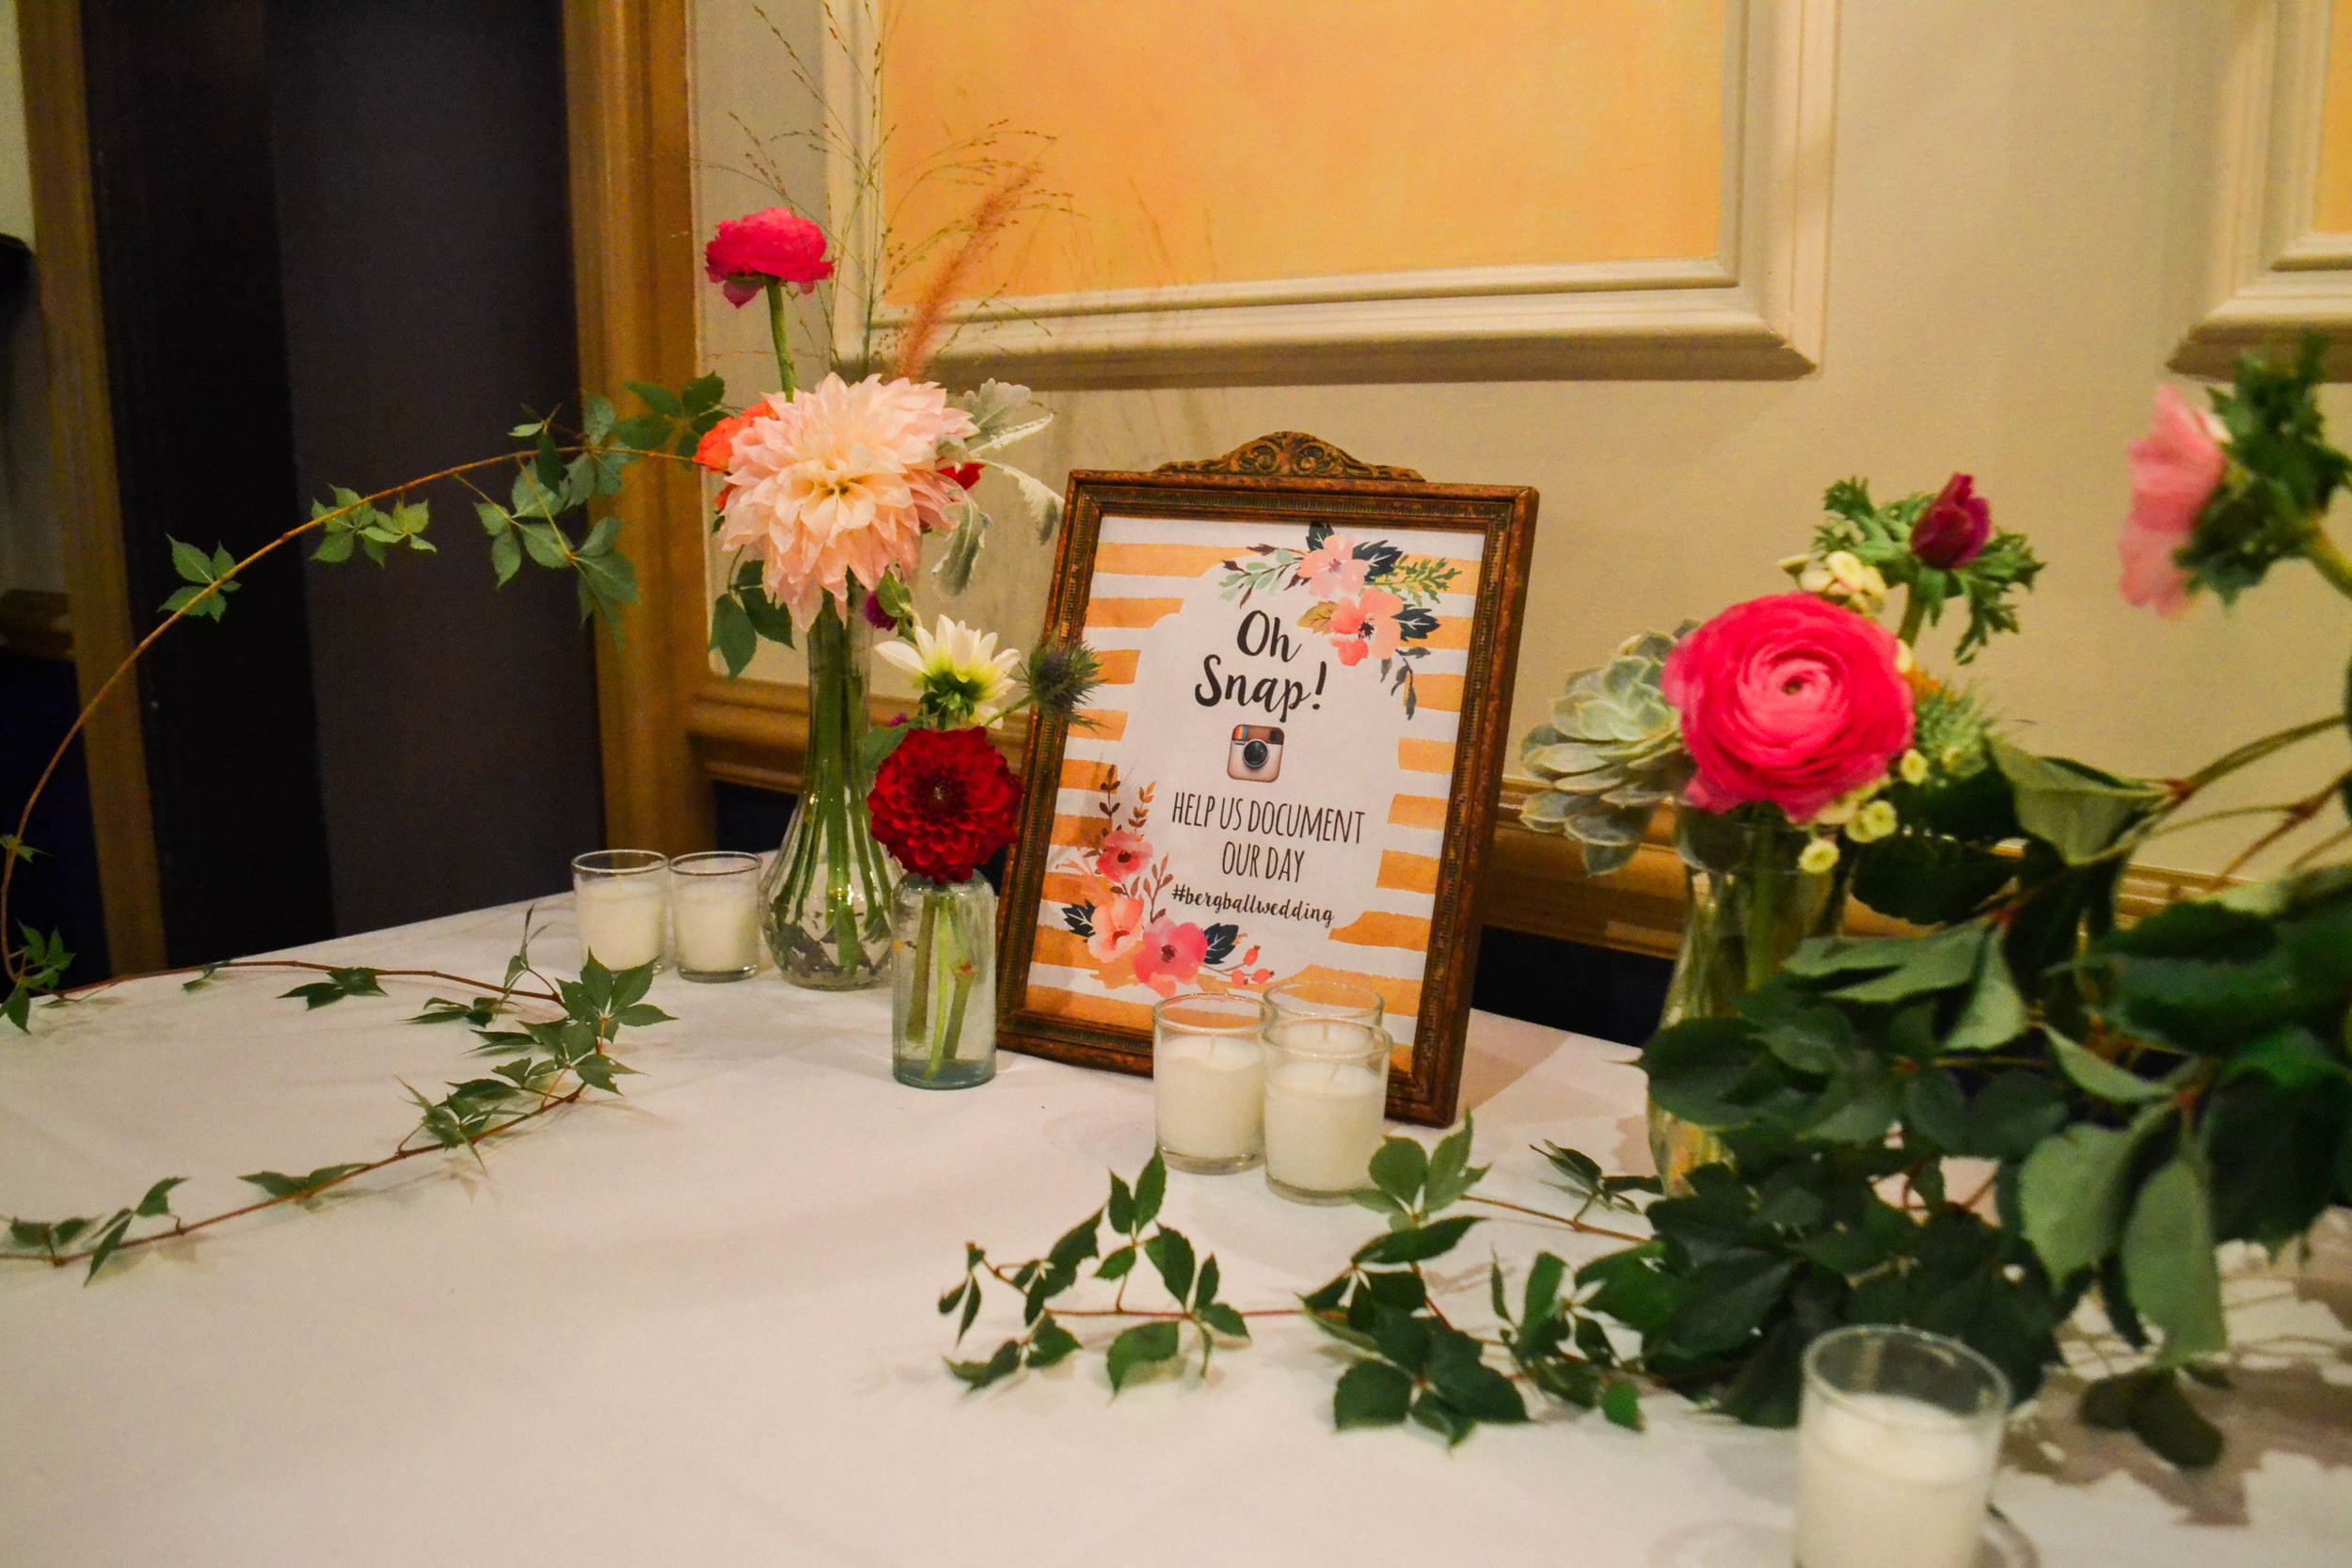 Colorful and romantic flower place card table flowers in bud vase bottle. Catskills wedding. August.